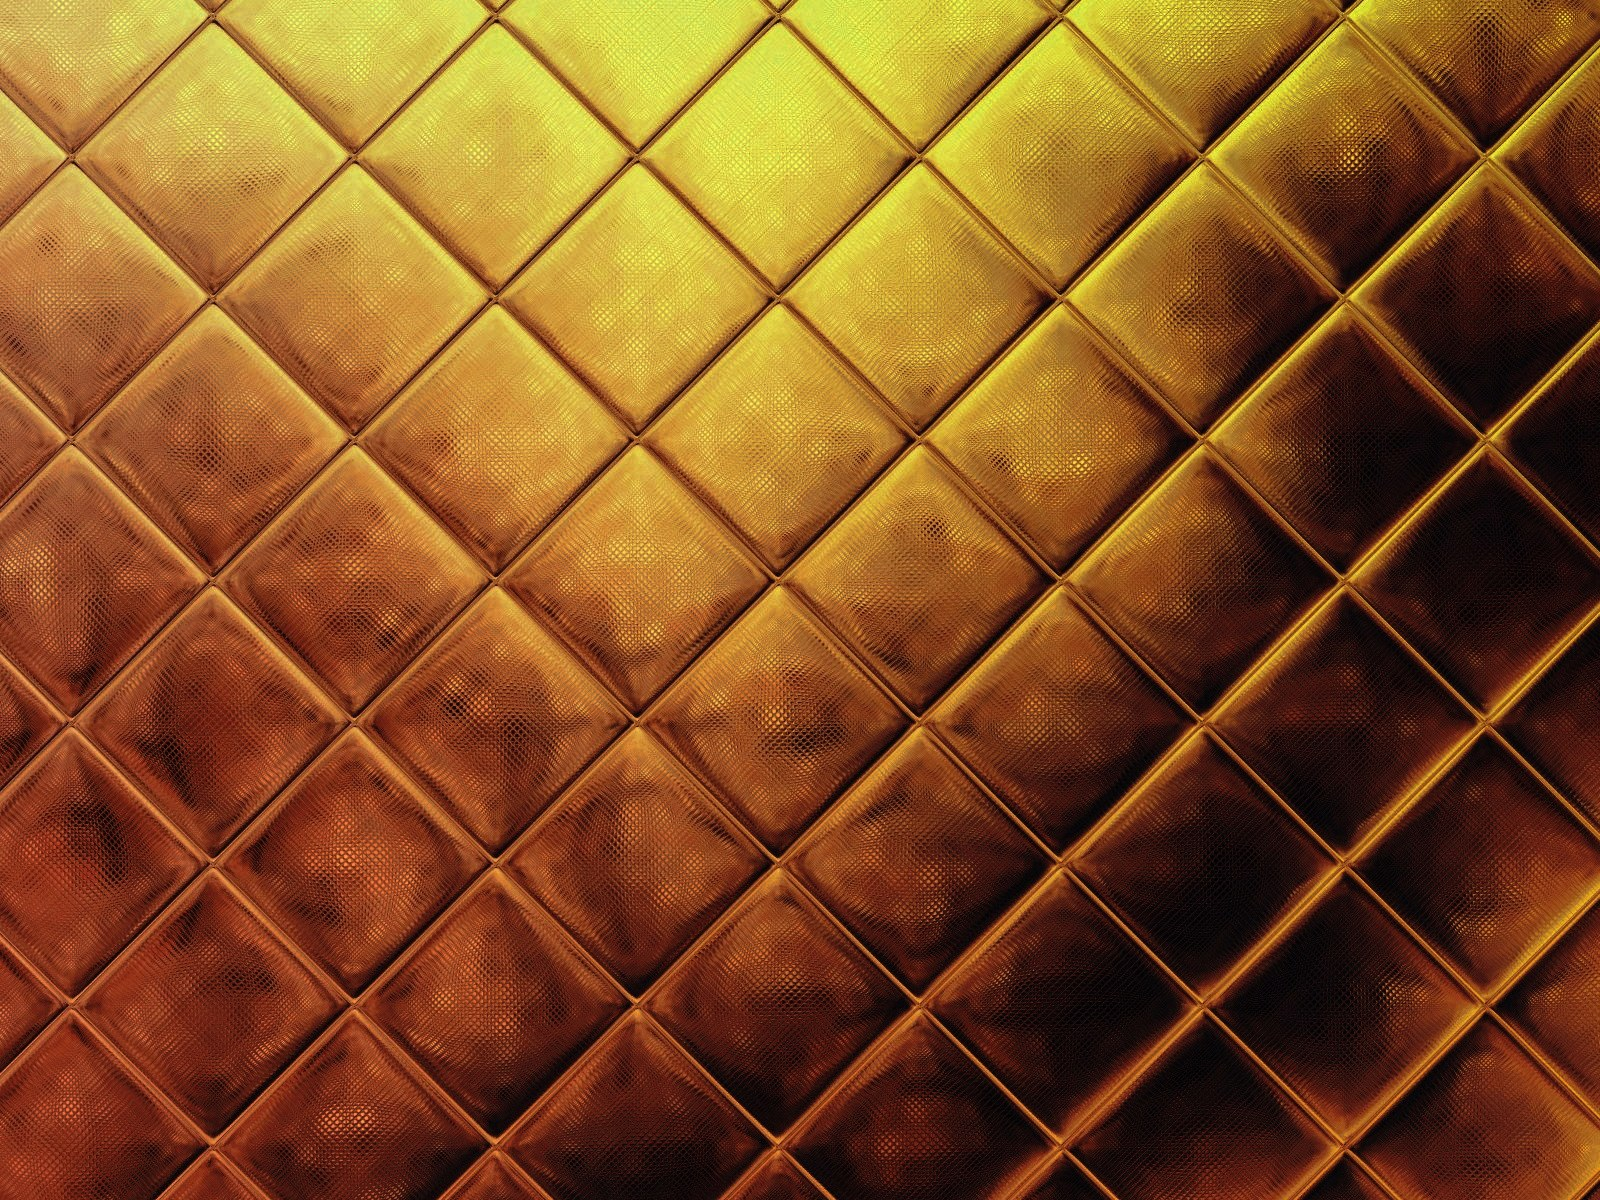 Golden Design Wallpaper : Hd gold wallpaper backgrounds for free desktop download